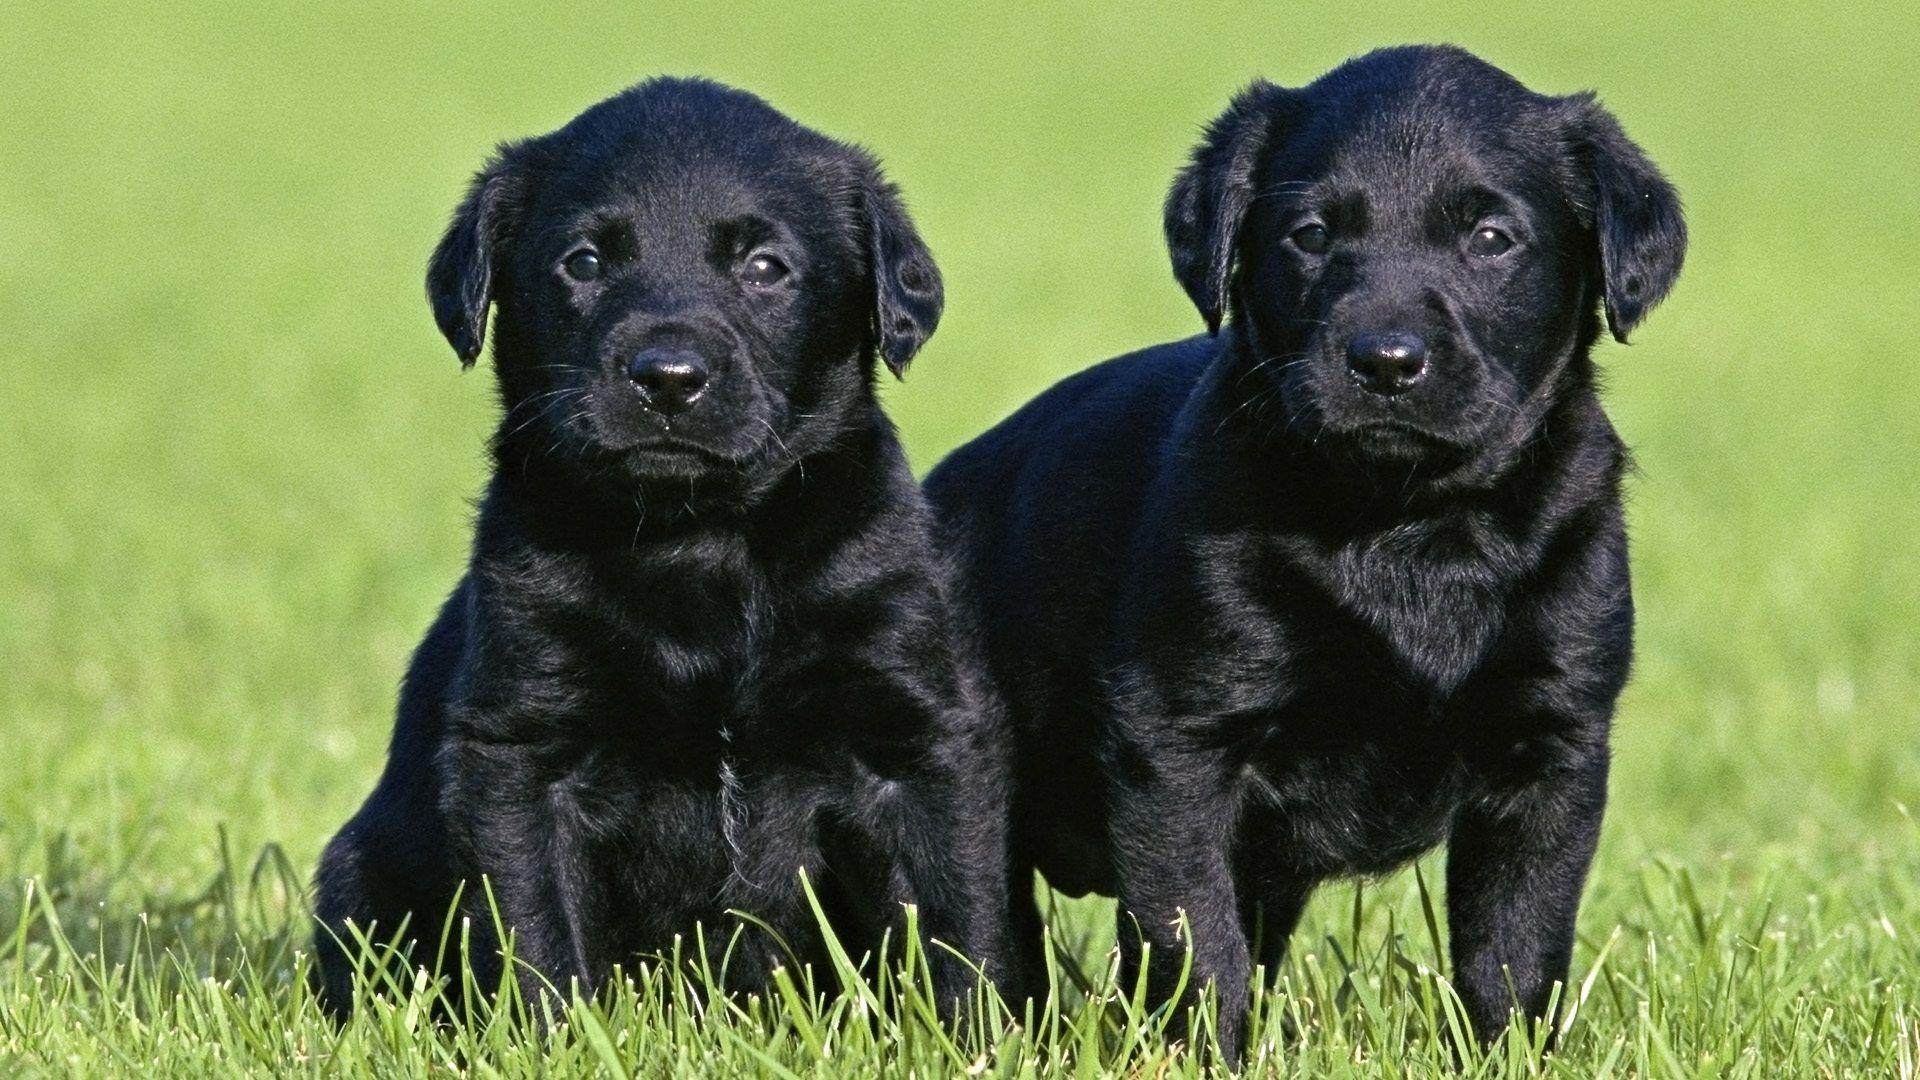 Black Lab Puppy Wallpapers 1920x1080